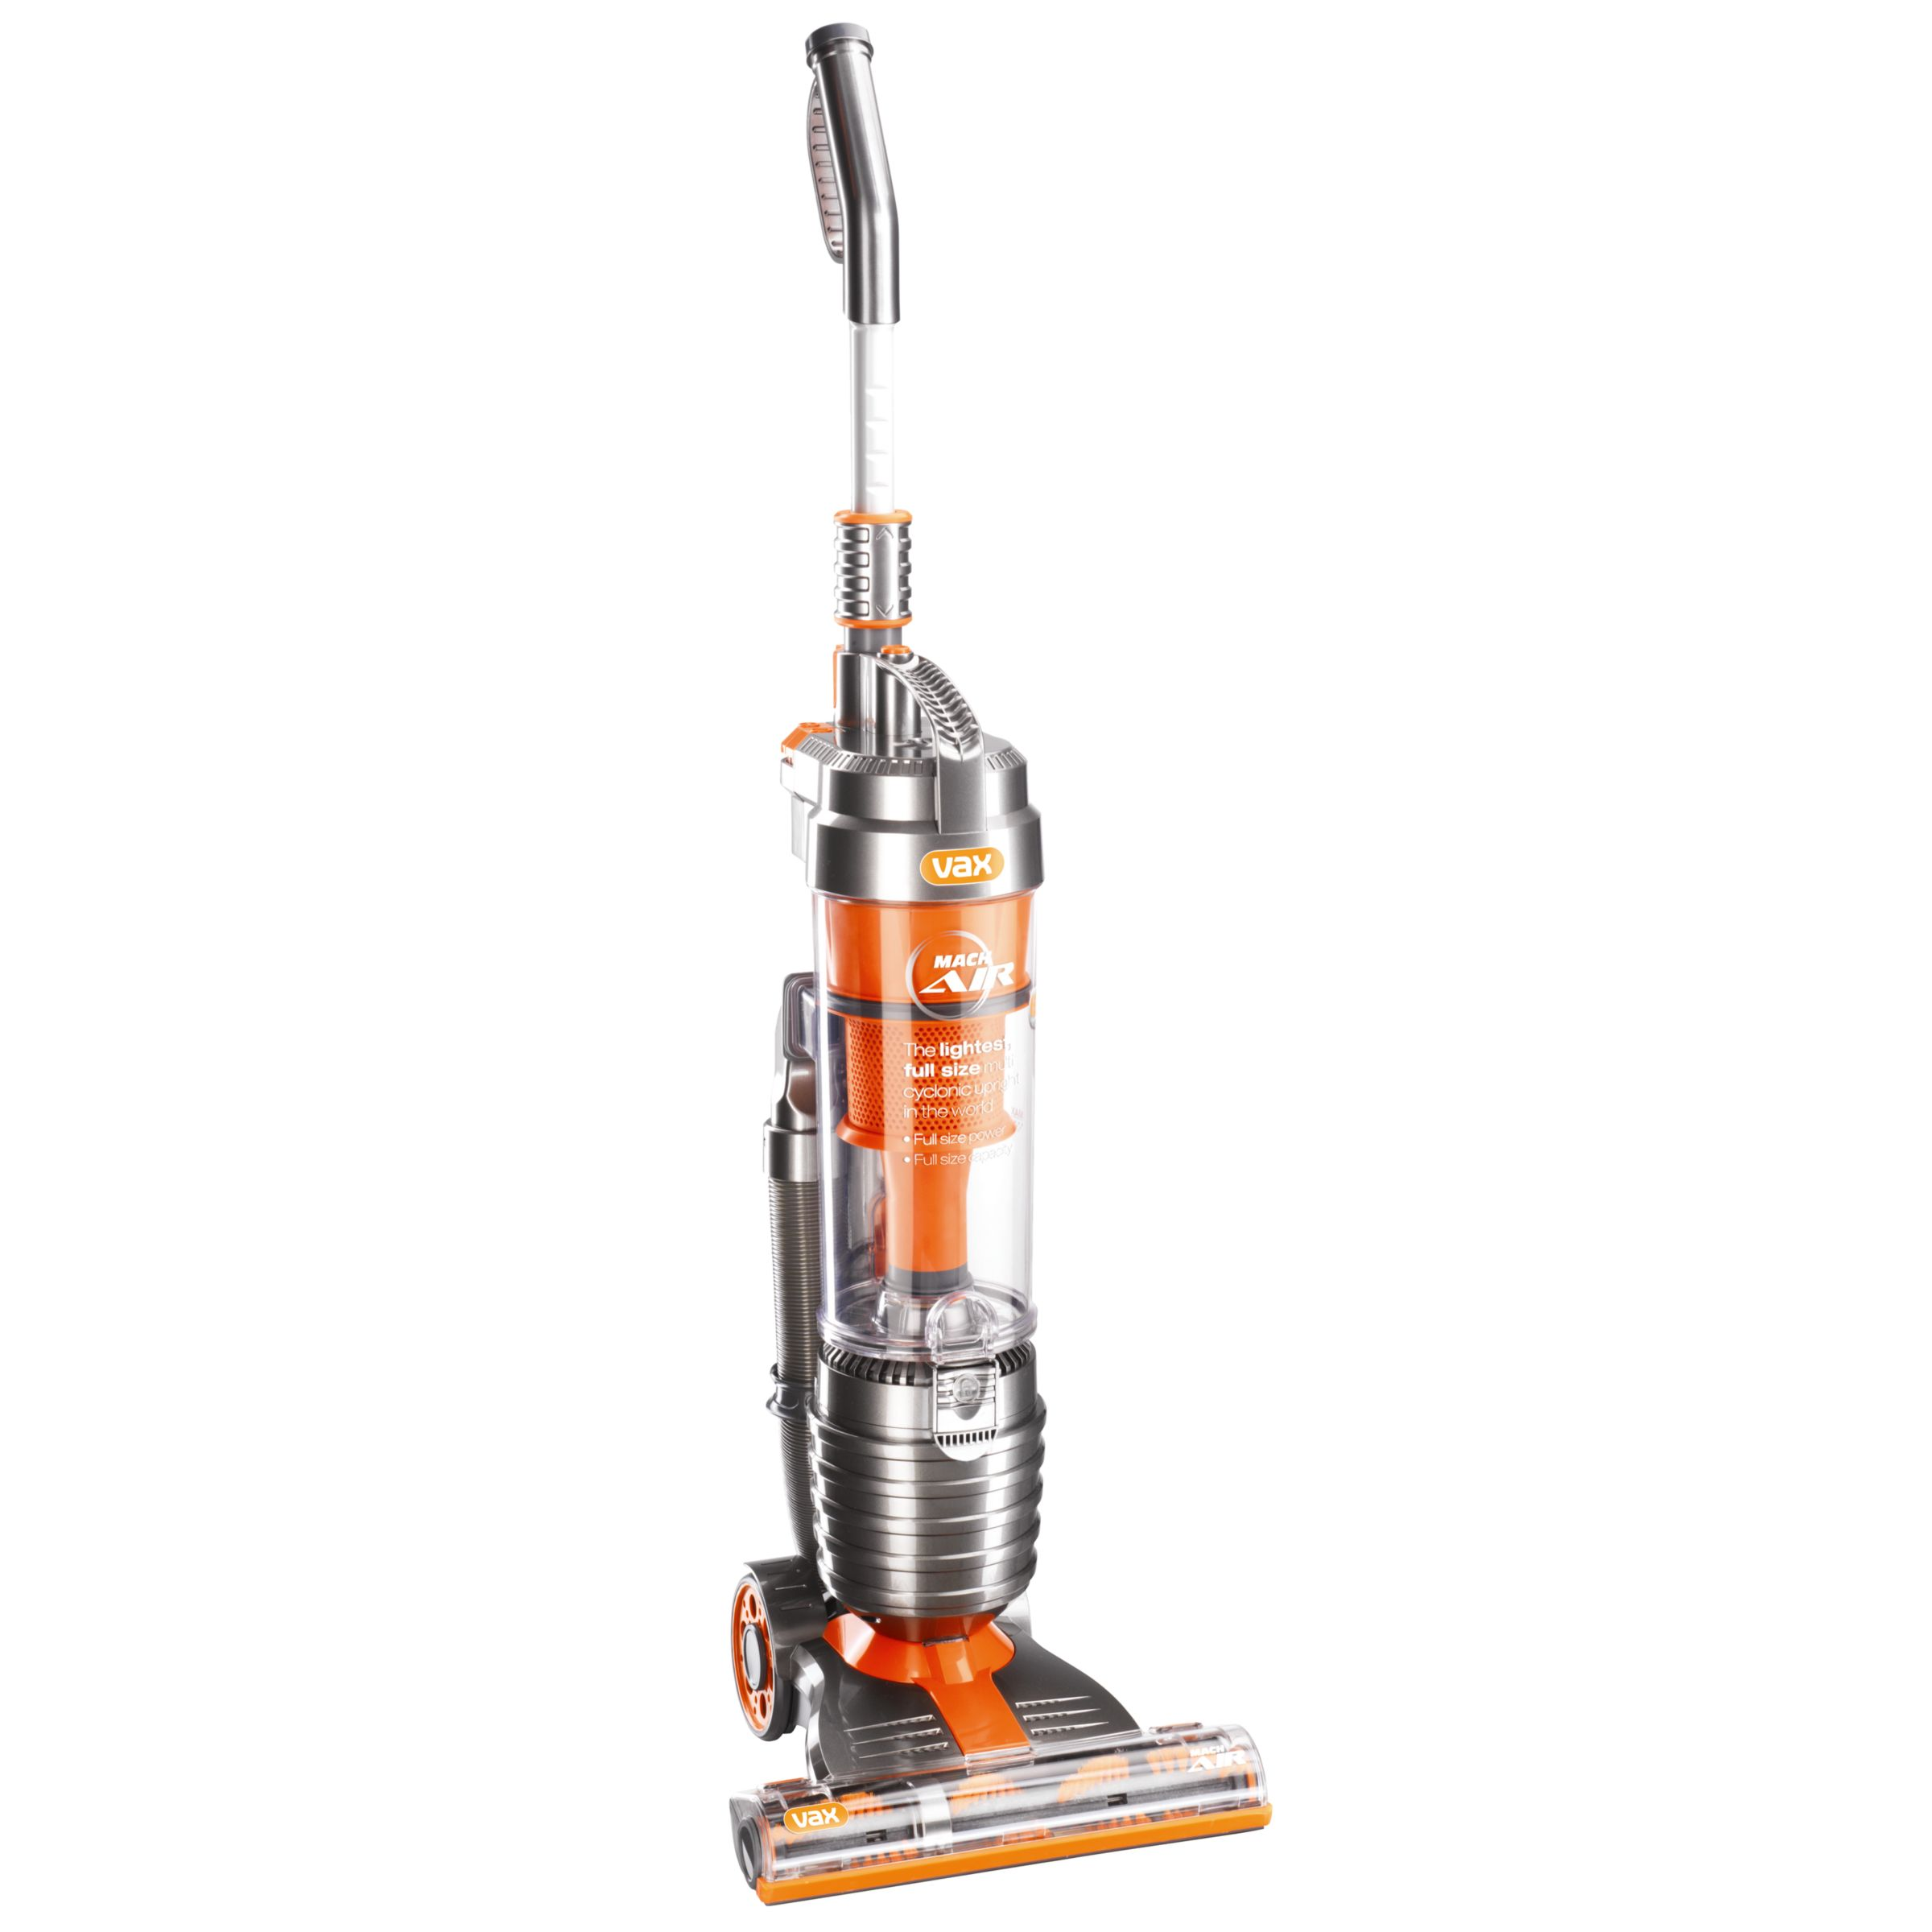 Vax U91-MA-B Air Upright Vacuum Cleaner